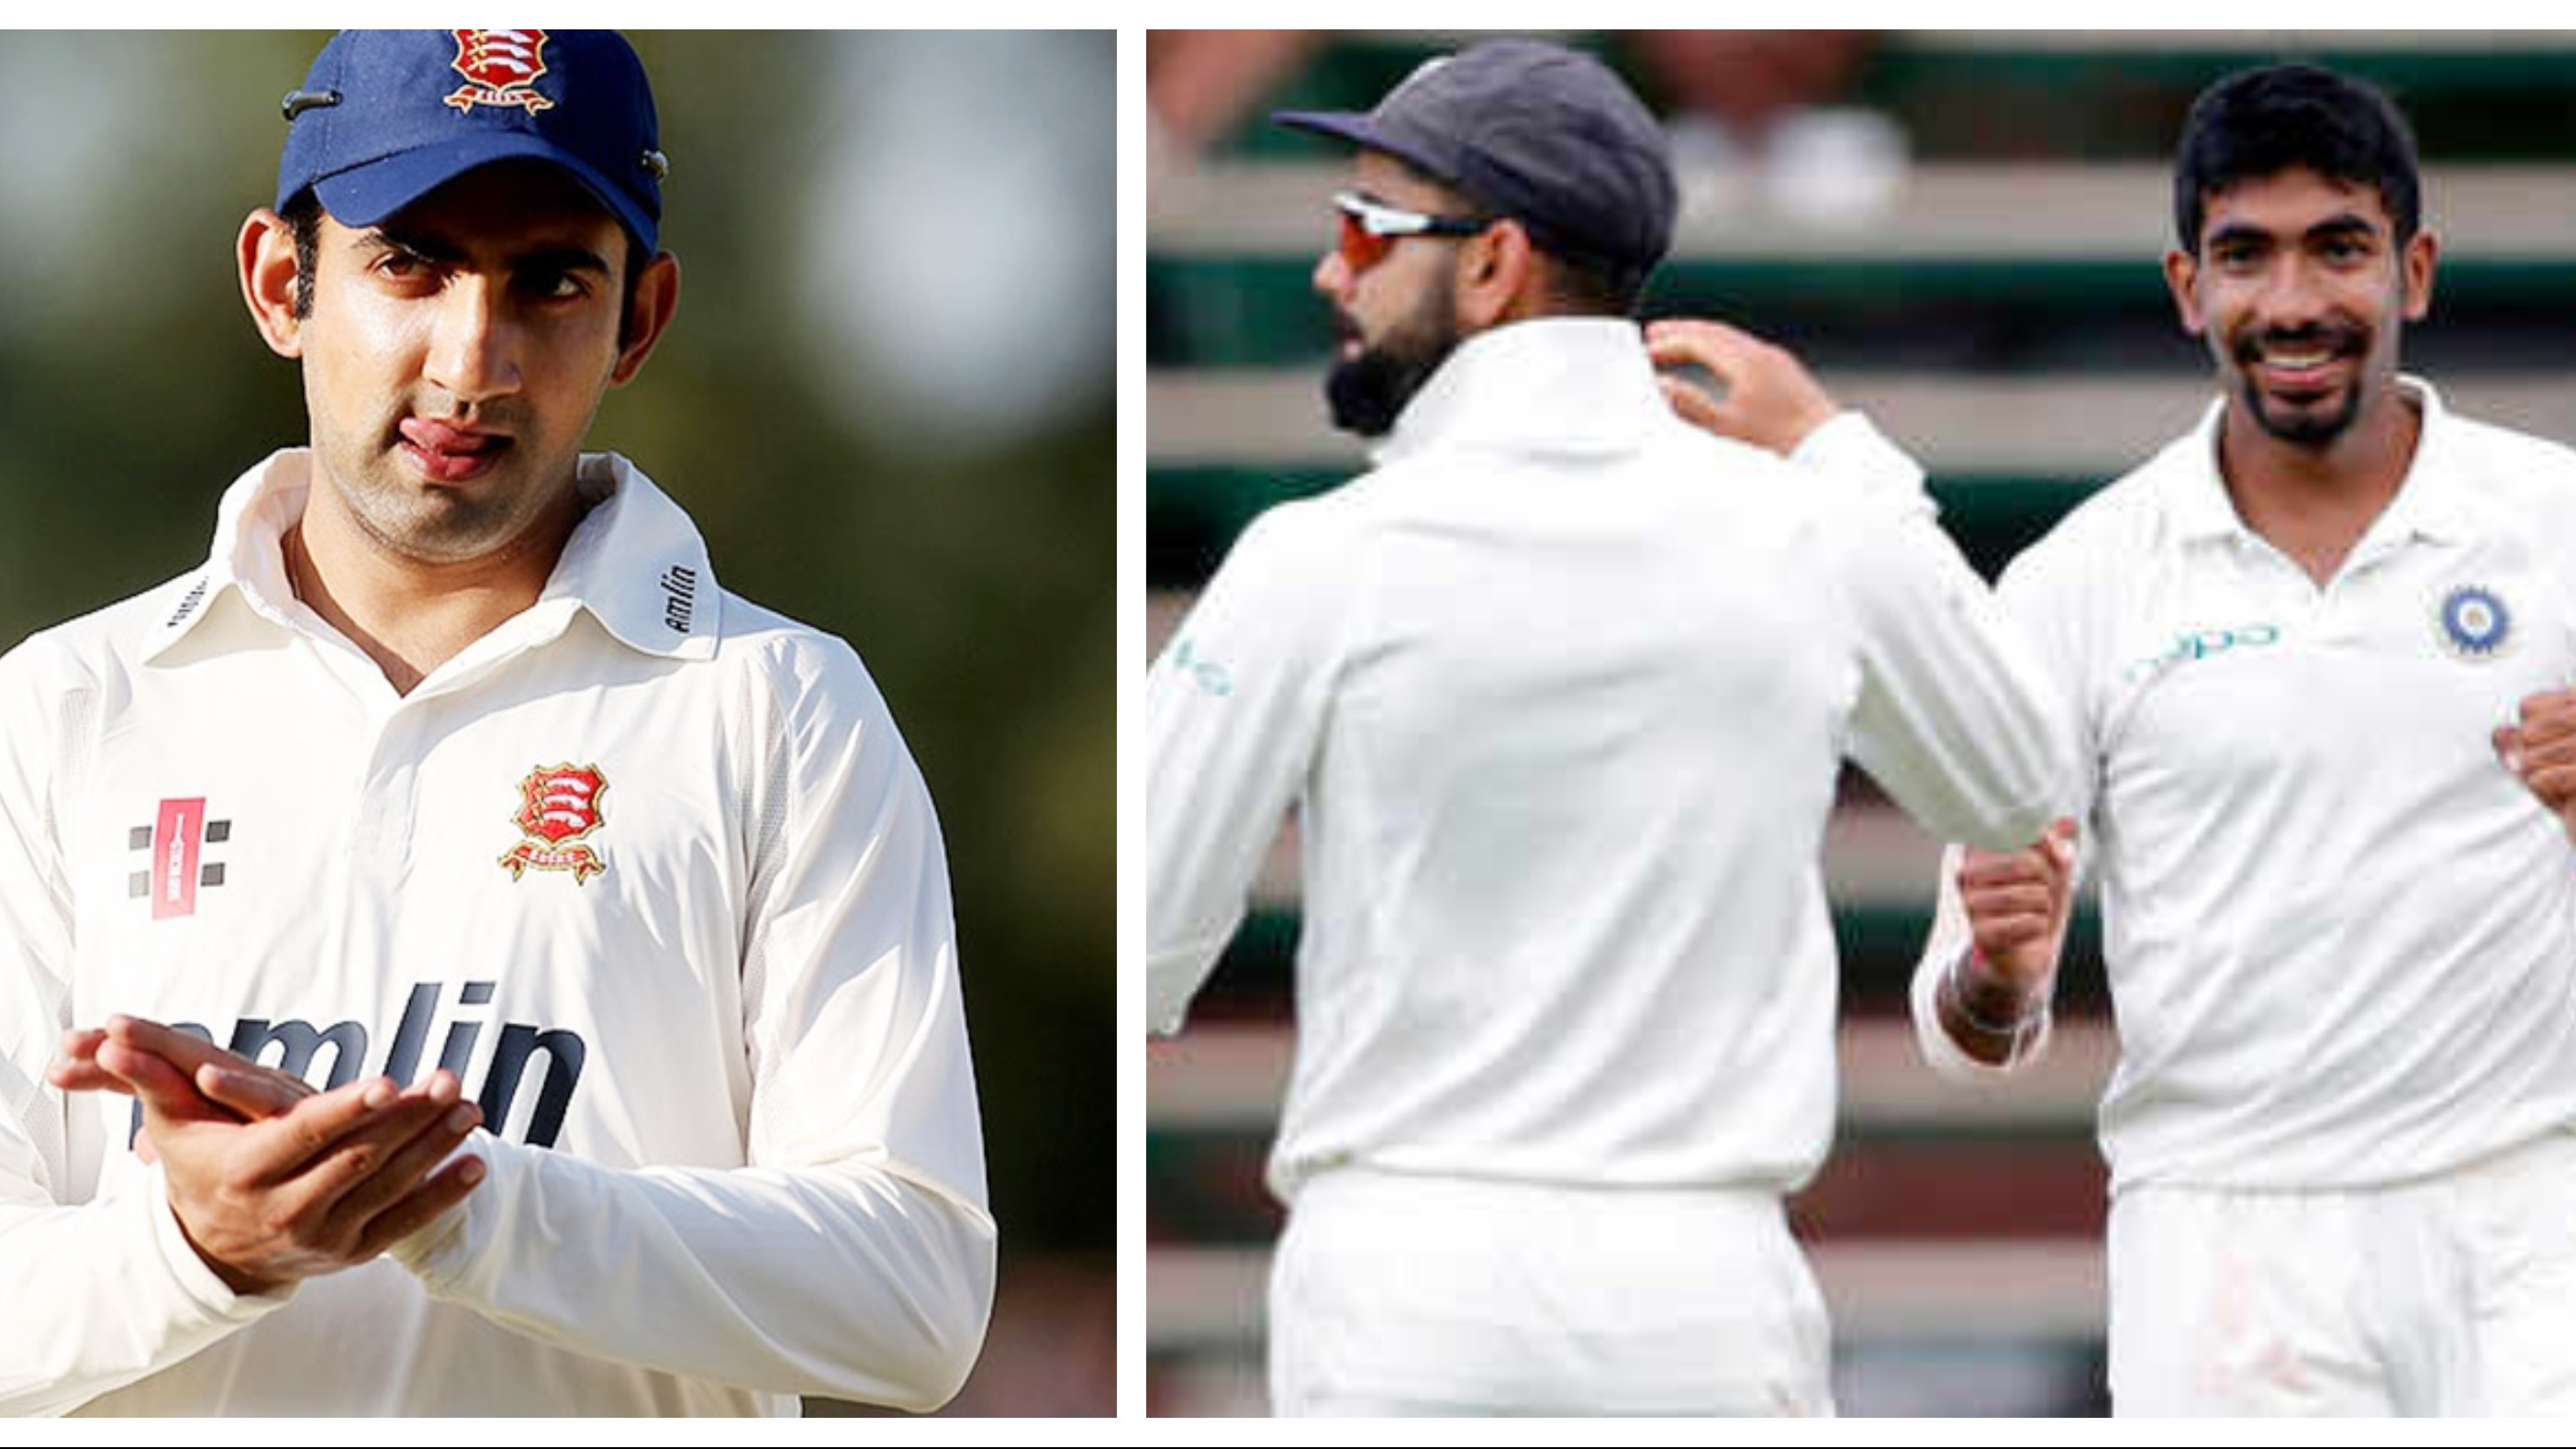 ENG v IND 2018: Gautam Gambhir praises Indian bowlers for dominating the opening day of the Southampton Test